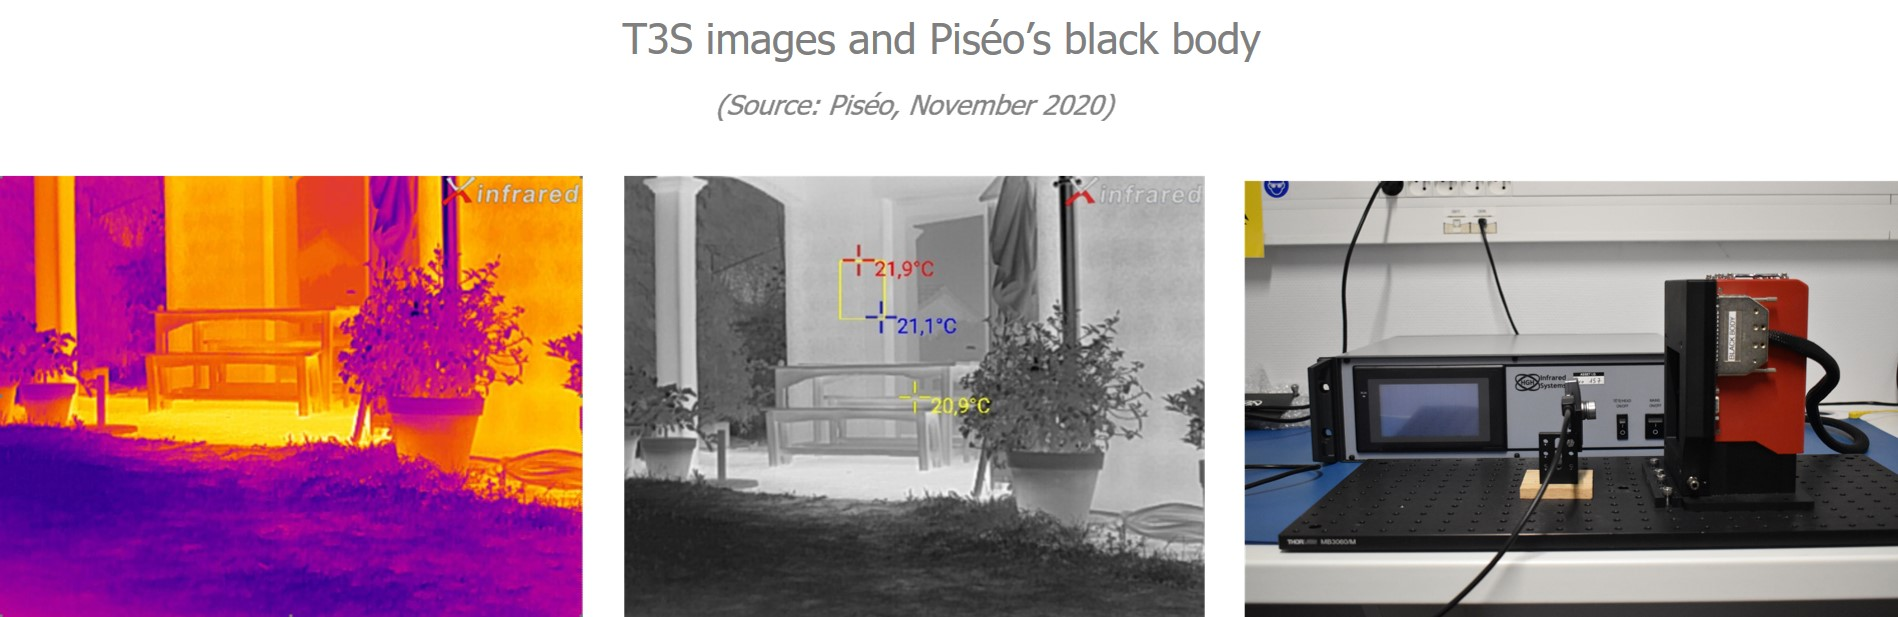 T3S images and Piséo's black body